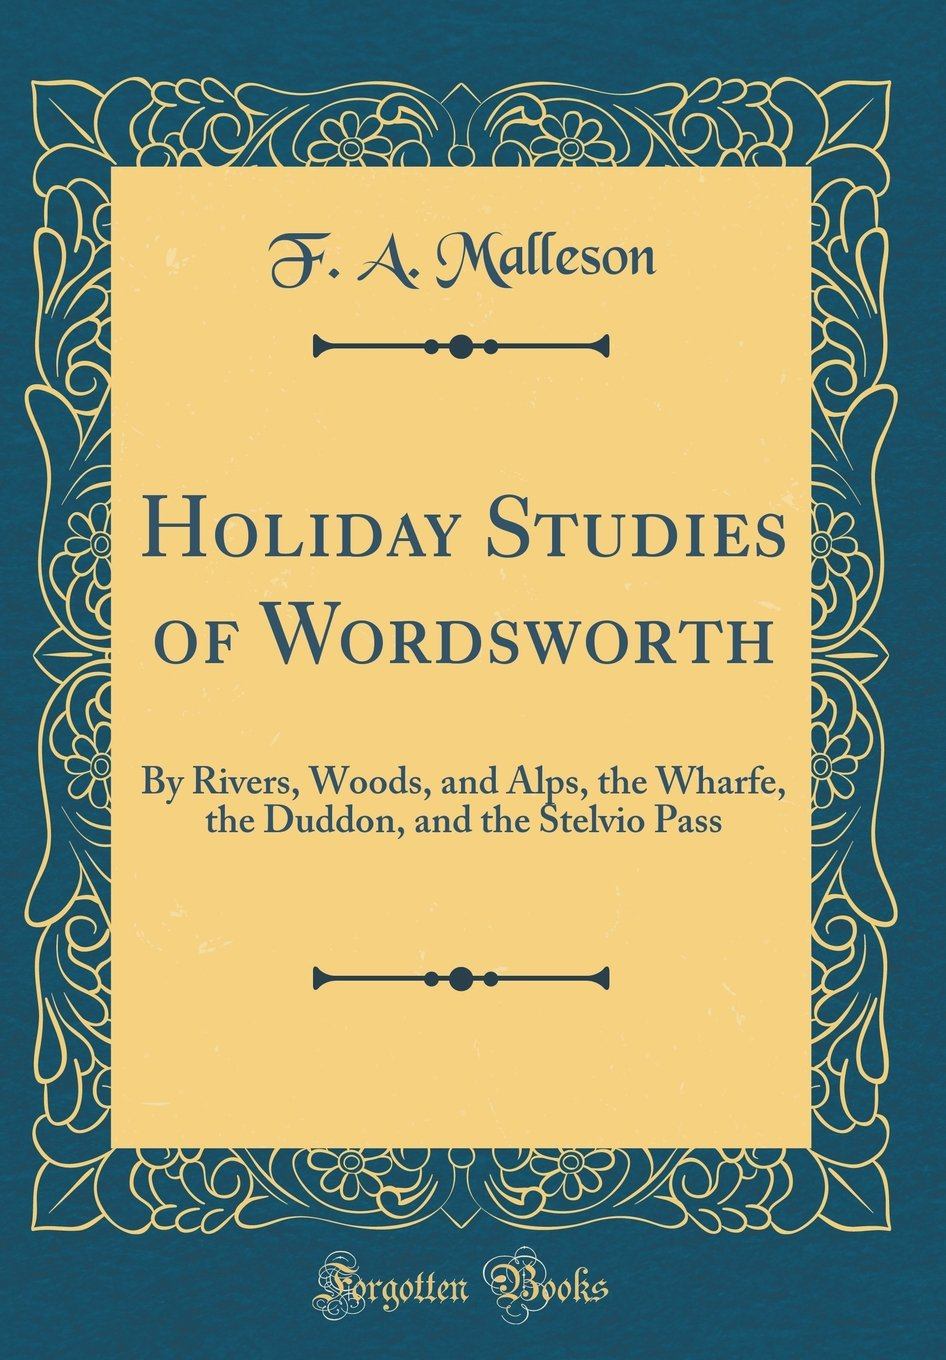 Read Online Holiday Studies of Wordsworth: By Rivers, Woods, and Alps, the Wharfe, the Duddon, and the Stelvio Pass (Classic Reprint) PDF ePub book